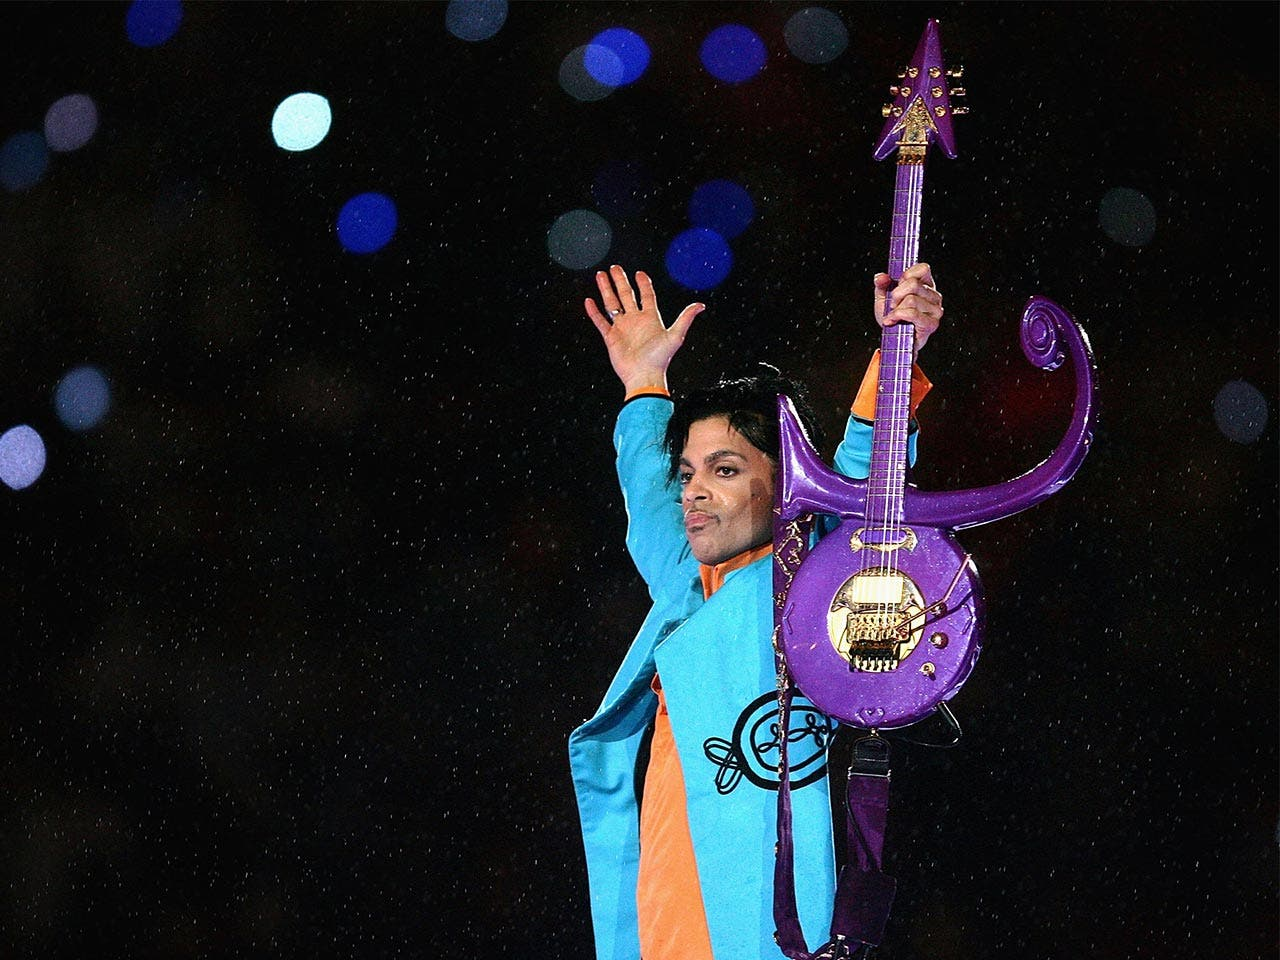 Prince | Jonathan Daniel/Getty Images